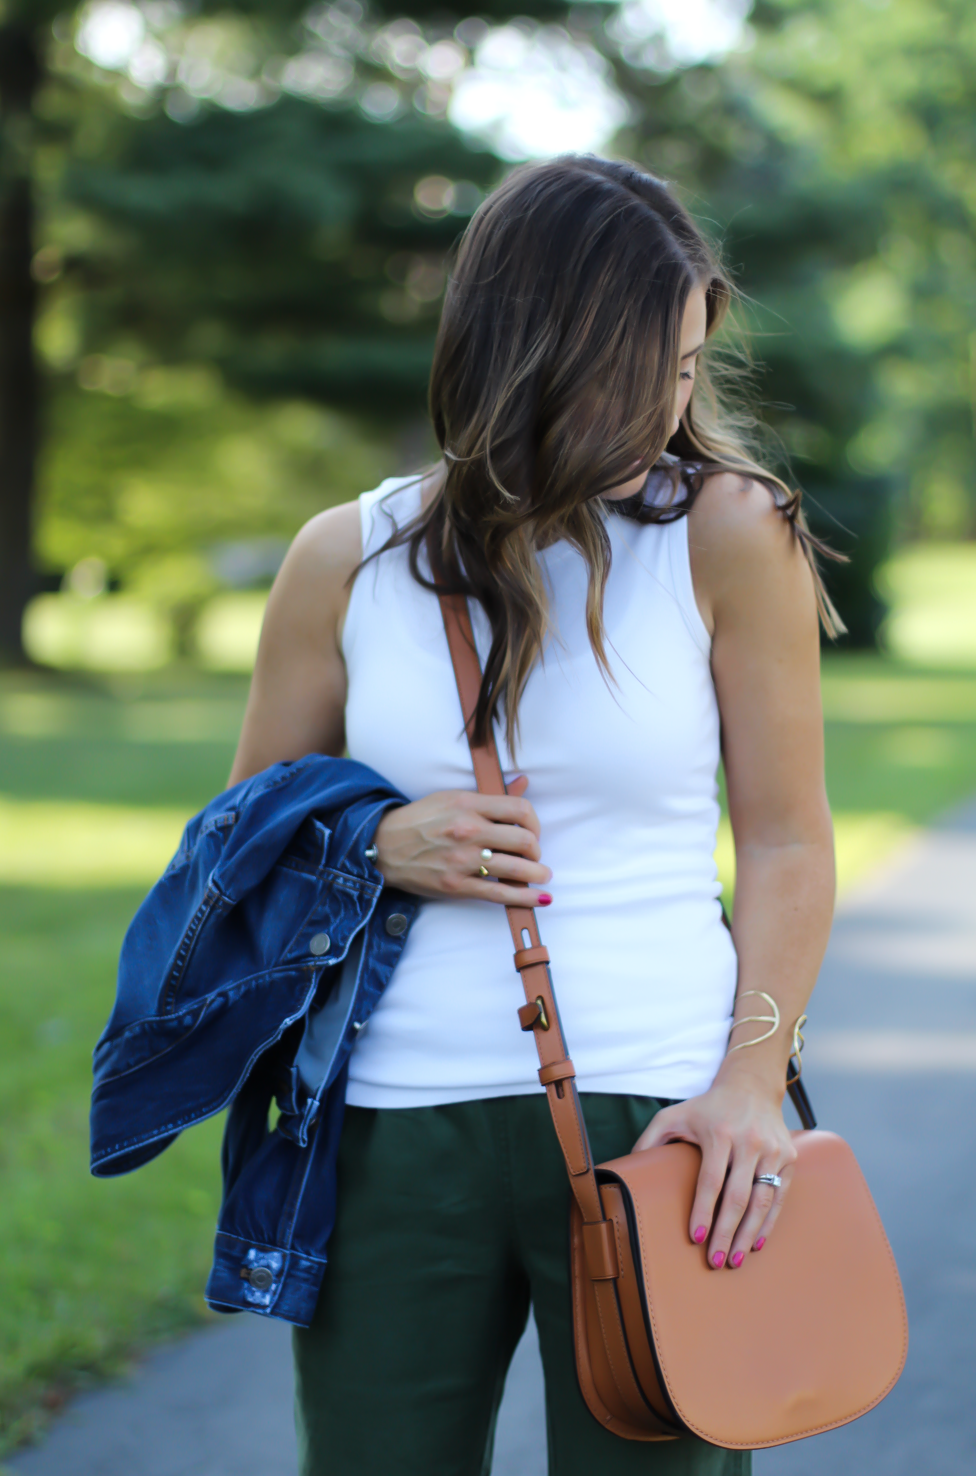 Army Green Joggers, White Sleeveless Shell Tee, Gladiator Sandals, Saddle Bag, J.Crew, tory Burch, Ancient Gladiator 13